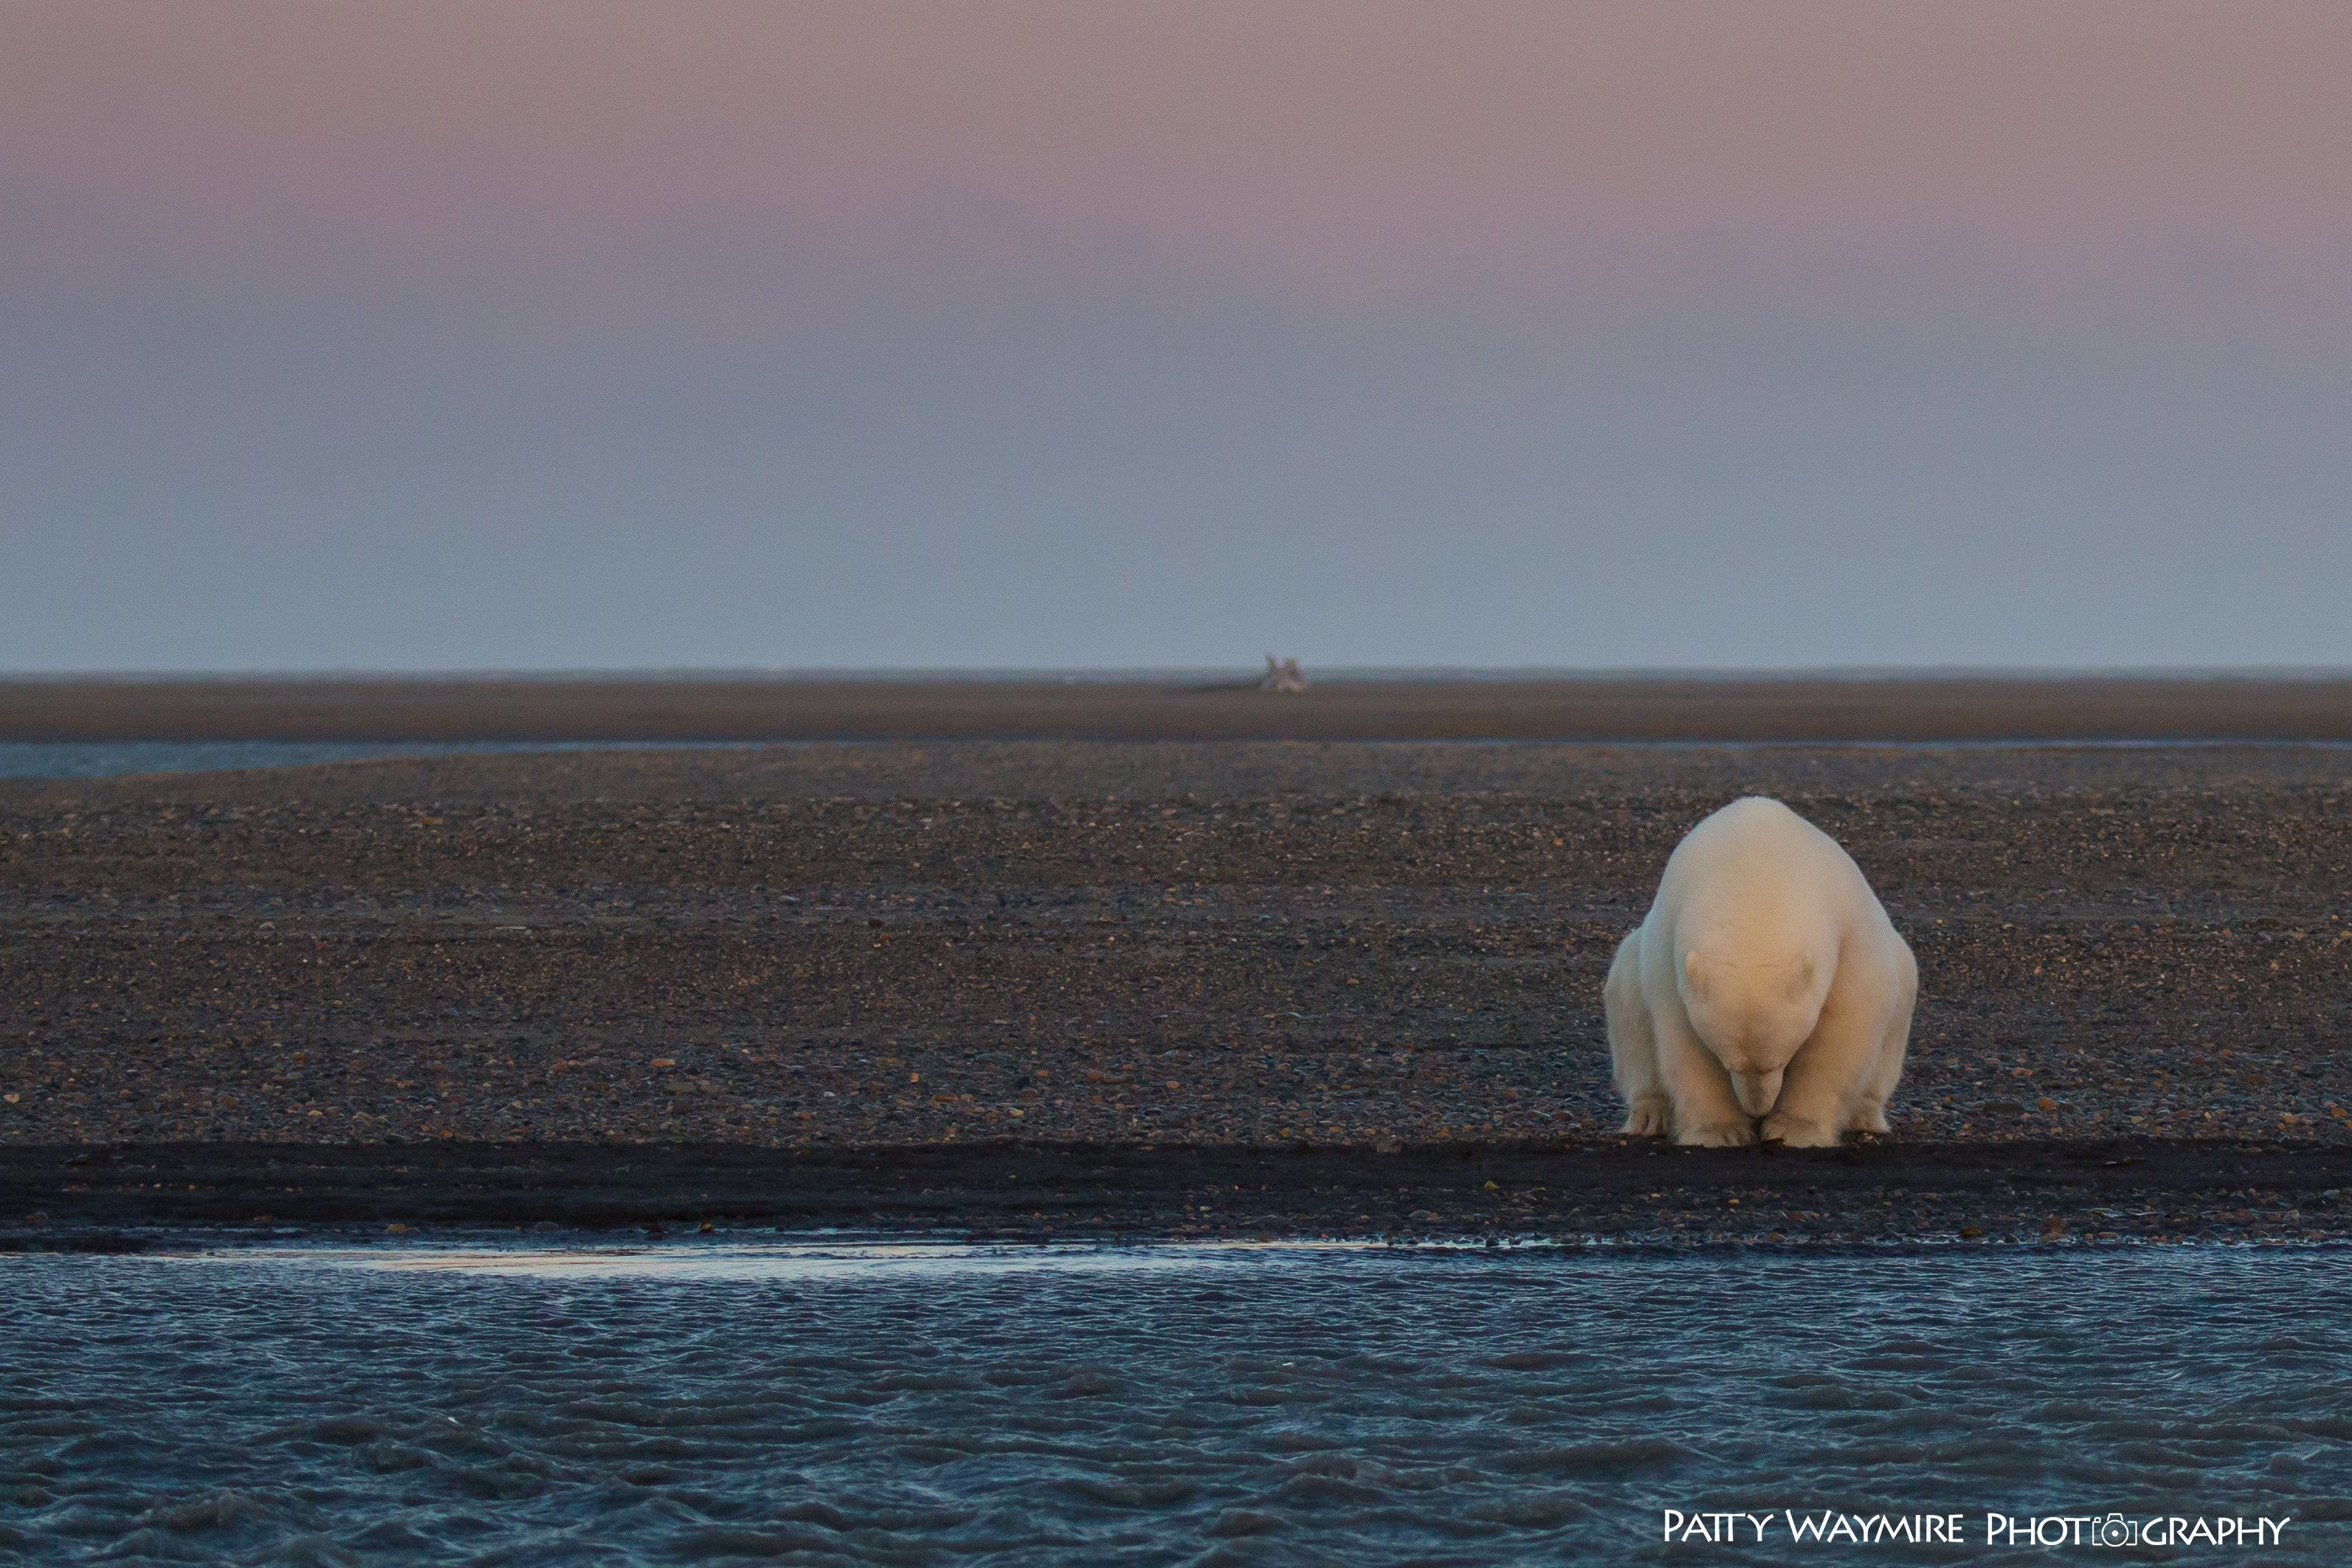 """Patty Waymire says she shot """"No Snow, No Ice""""after being struck by how """"contemplative"""" the bear appeared to her."""